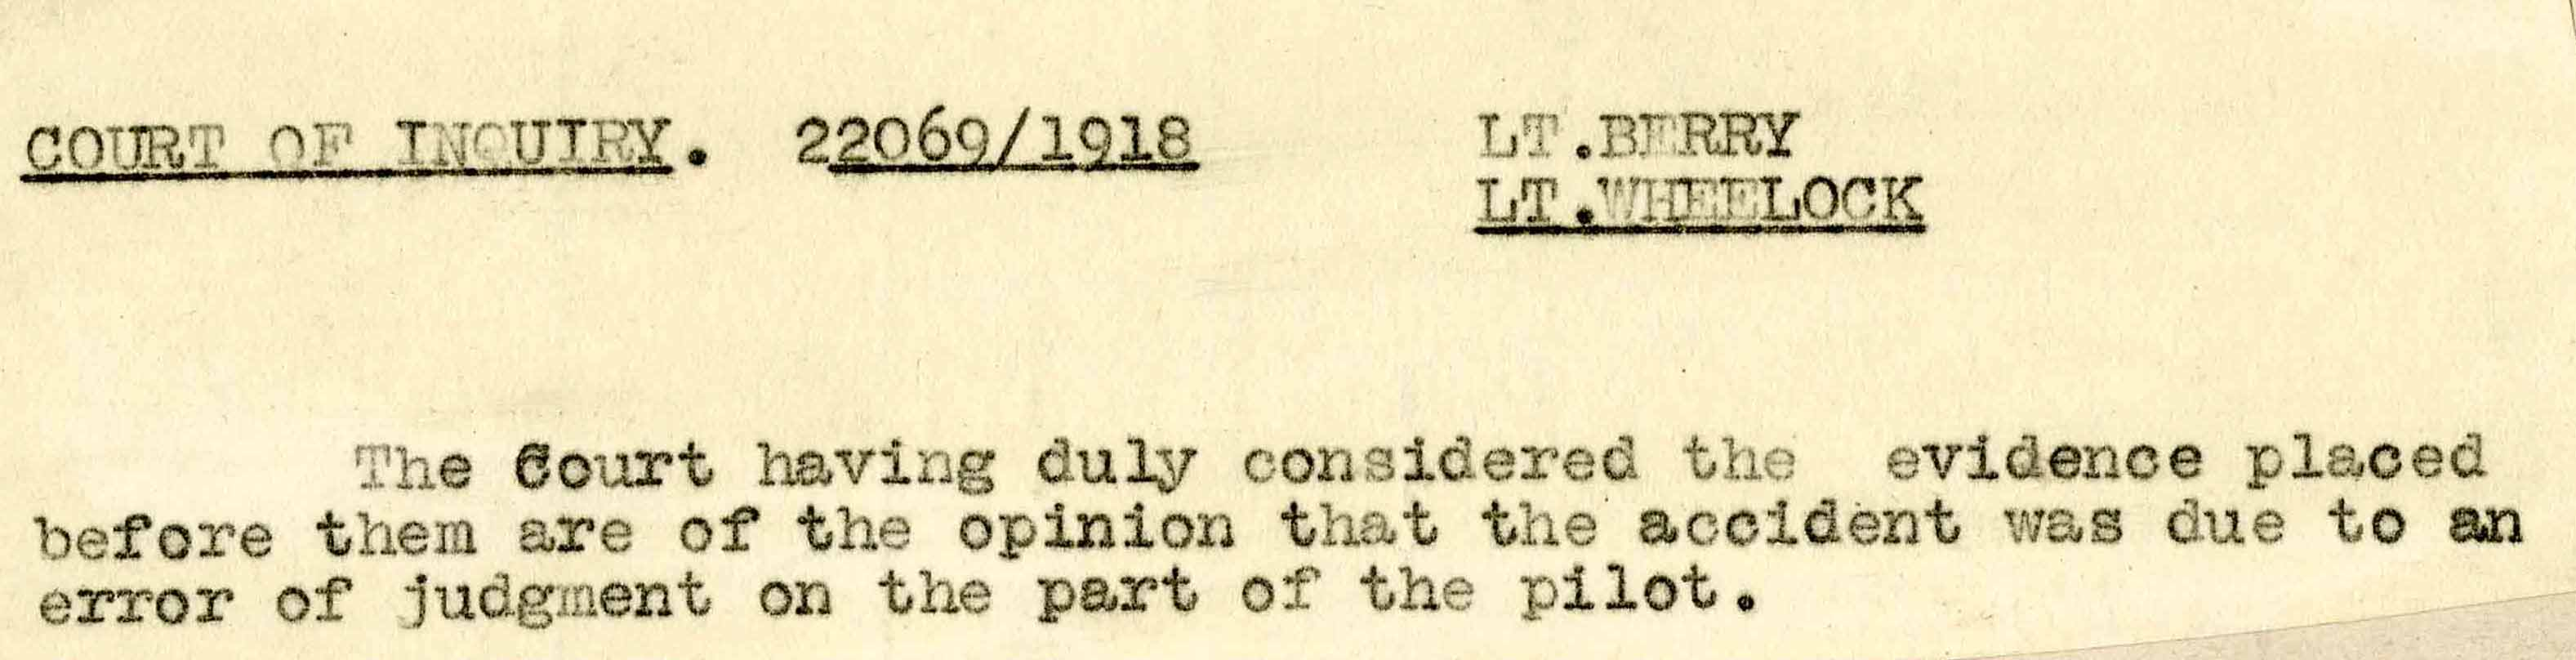 Typewritten text that reads: Court of Inquiry. 22069/1918 Lt. Berry, Lt. Wheelock. The Court having duly considered the evidence placed before them are of the opinion that the accident was due to an error of judgment on the part of the pilot.